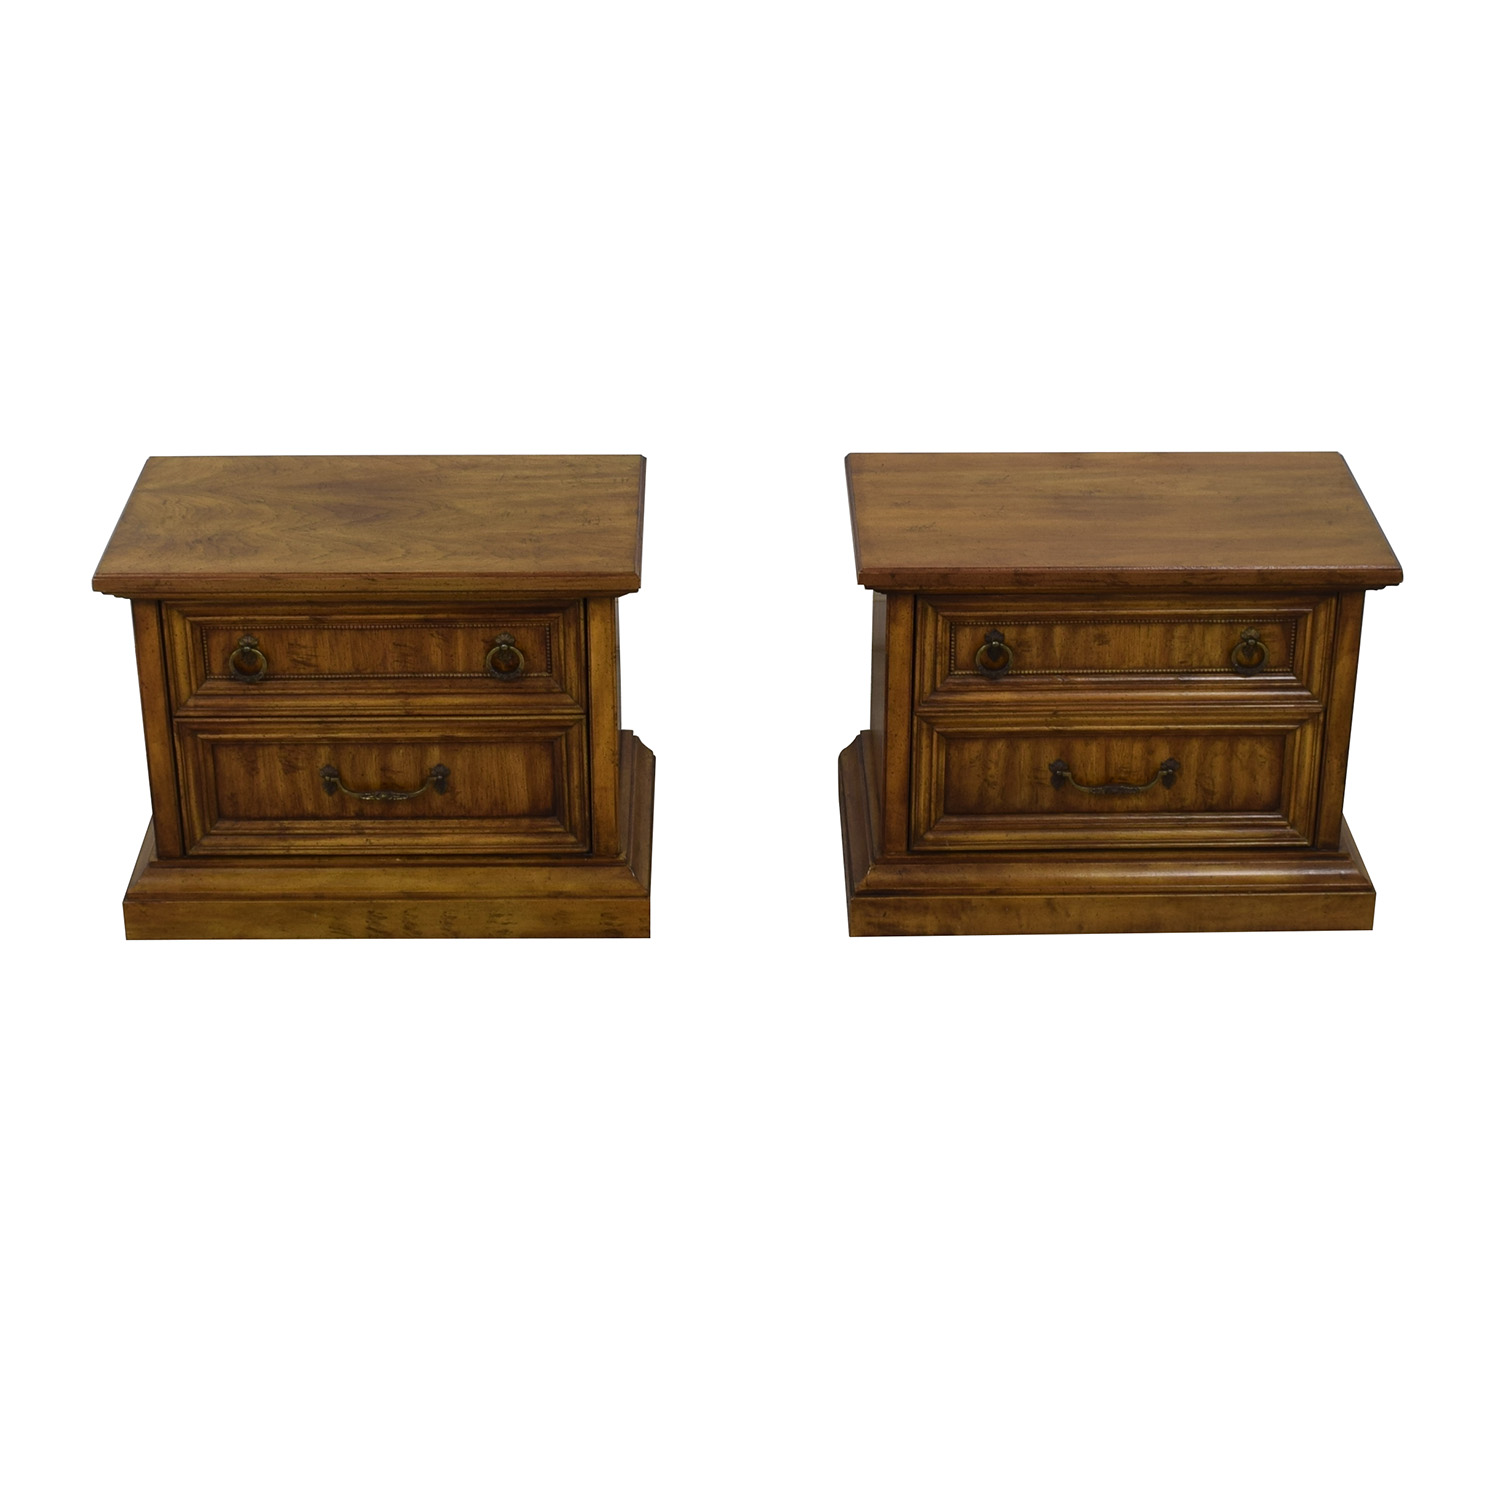 Stanley Furniture Stanley Furniture Two-Drawer End Tables dimensions